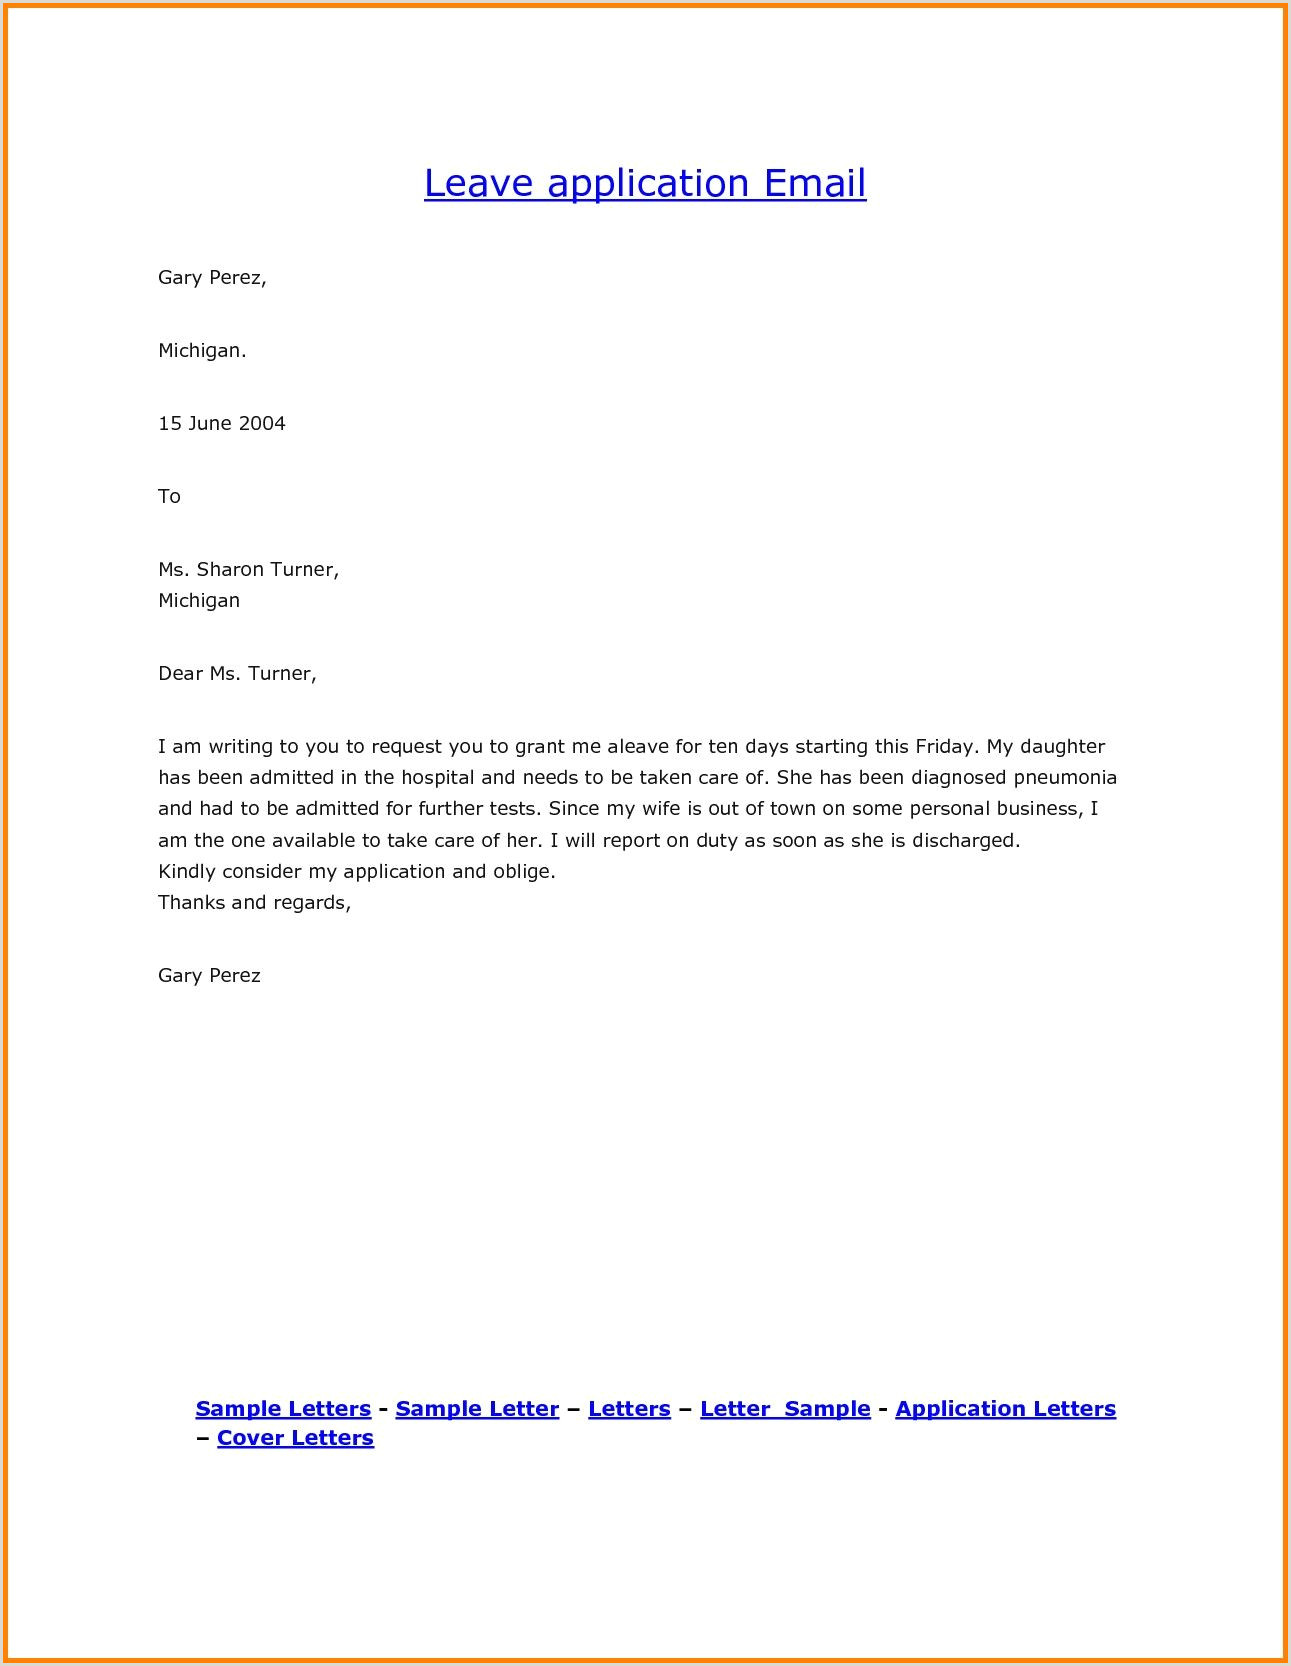 Cv Format For Job Application In Nepal Pin By Waldwert Site On Resume Formats